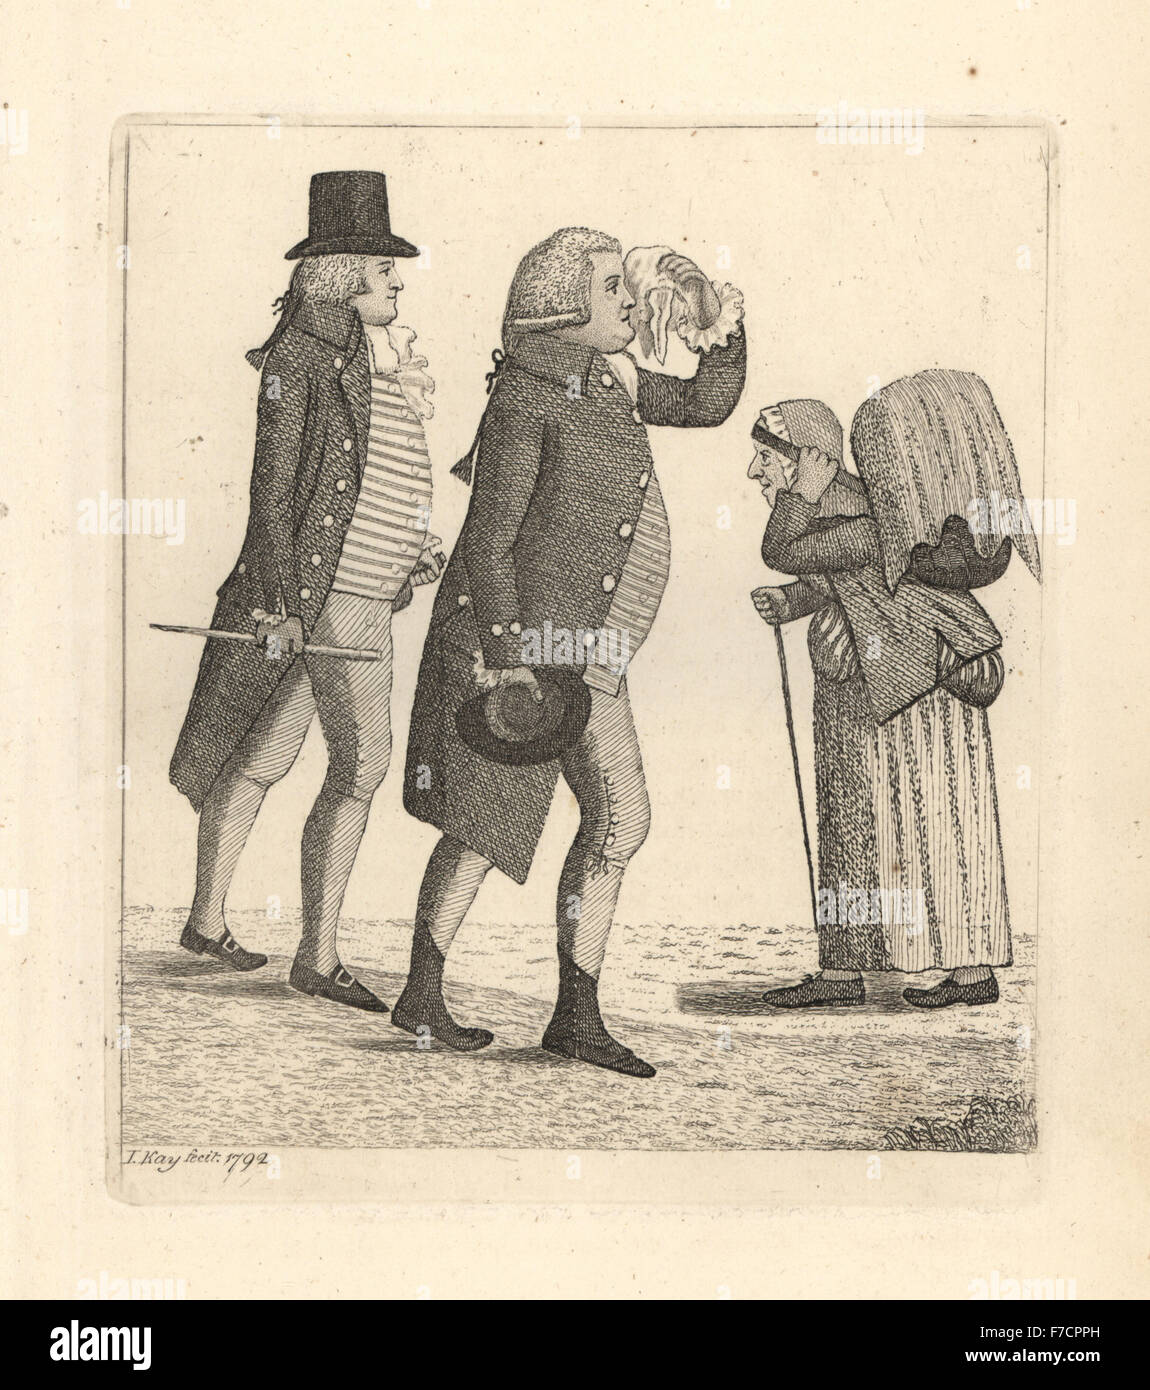 Edward Innes and James Cooper losing the bet to Hamilton Bell. Copperplate engraving by John Kay from A Series of - Stock Image